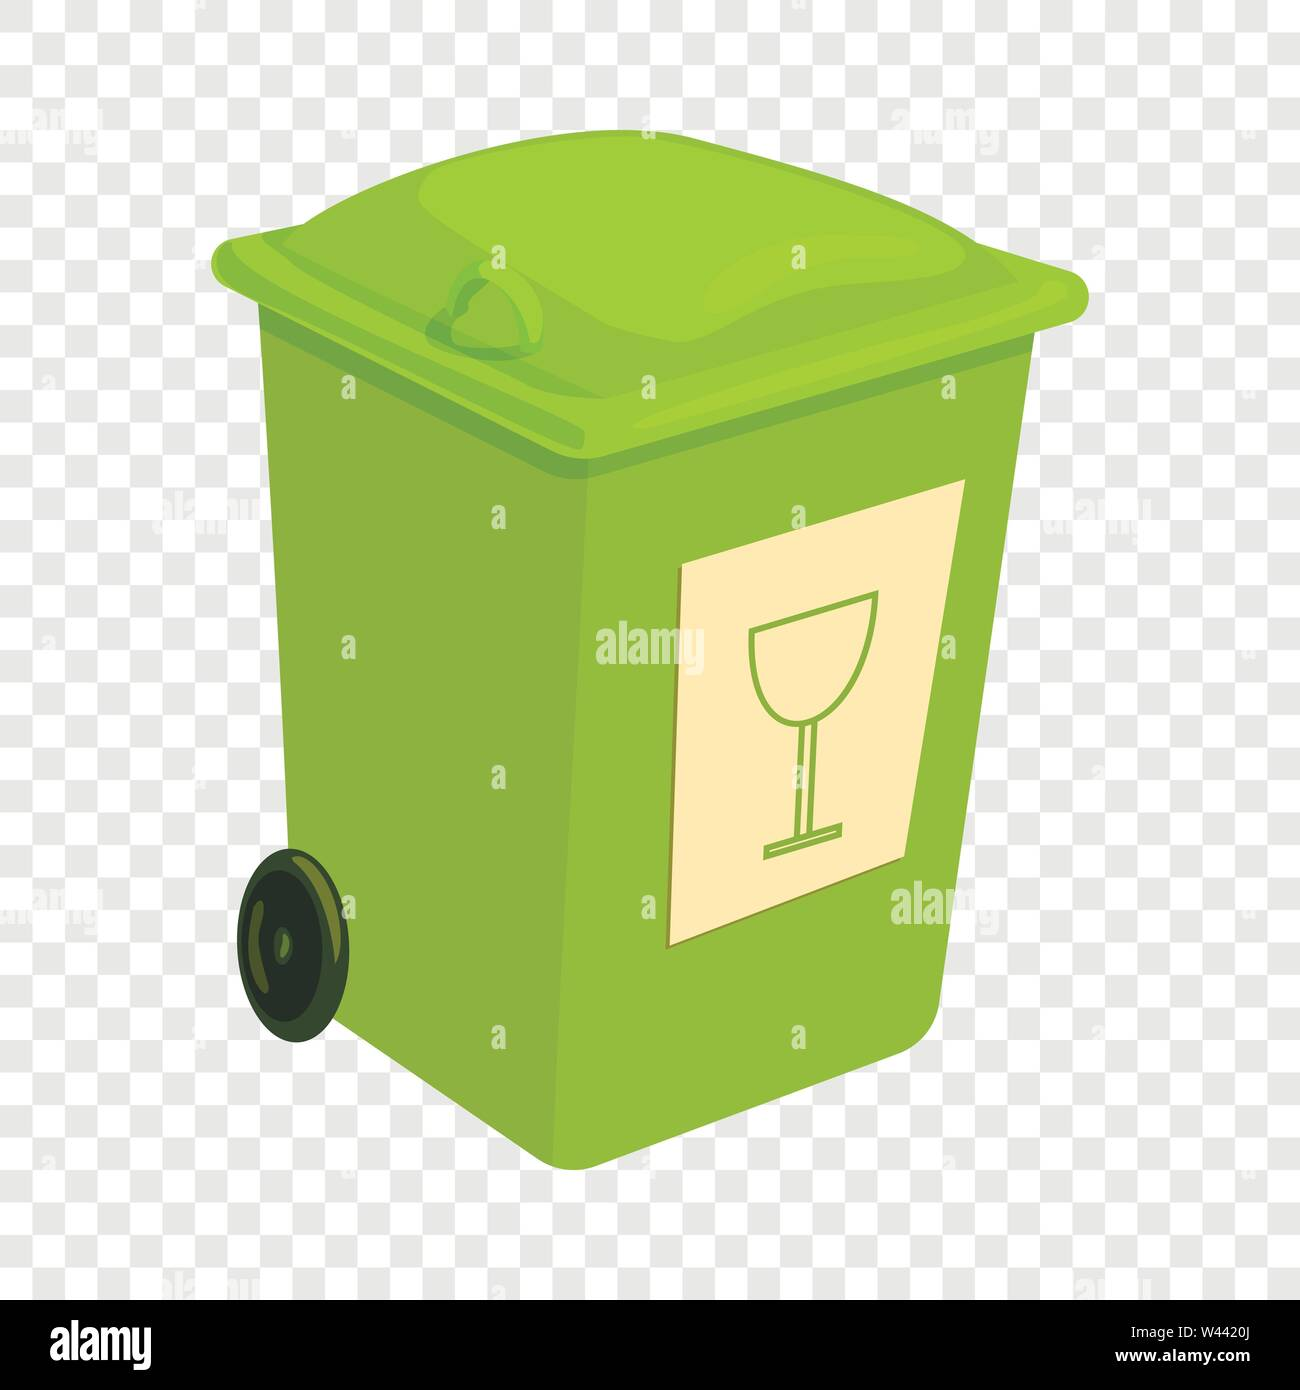 Green trashcan icon, cartoon style - Stock Image